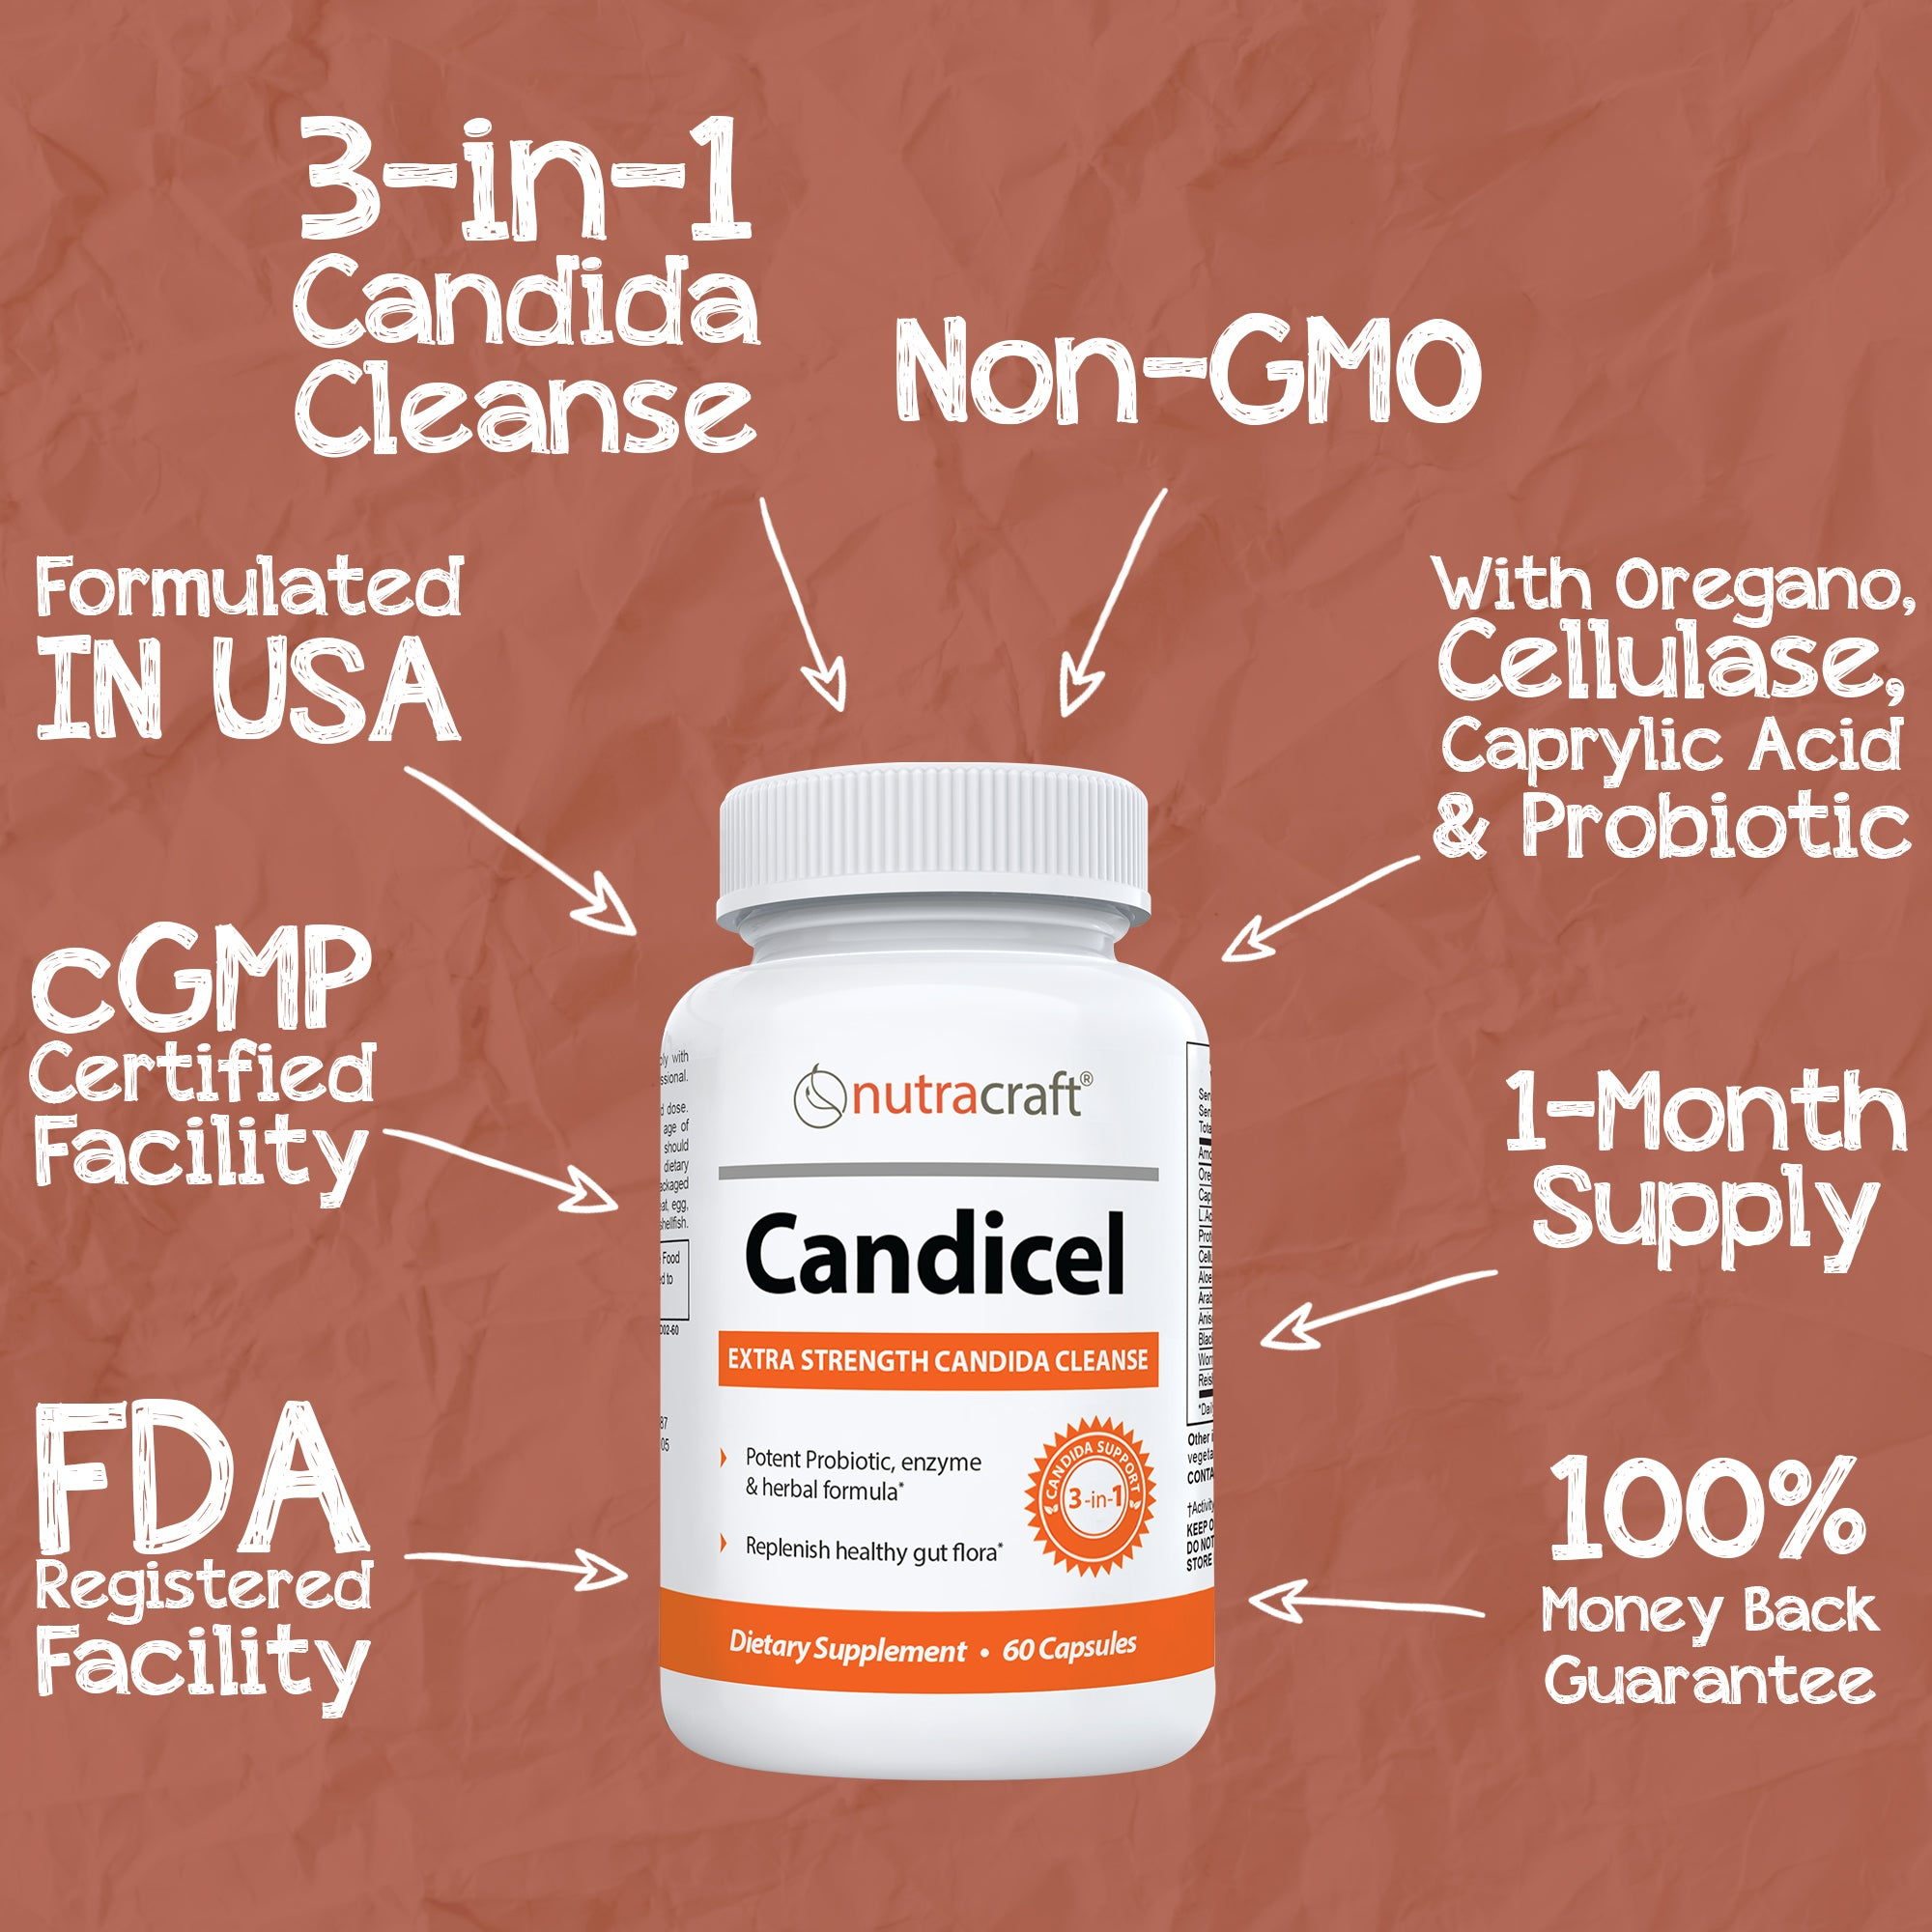 nutracraft-candicel-seals